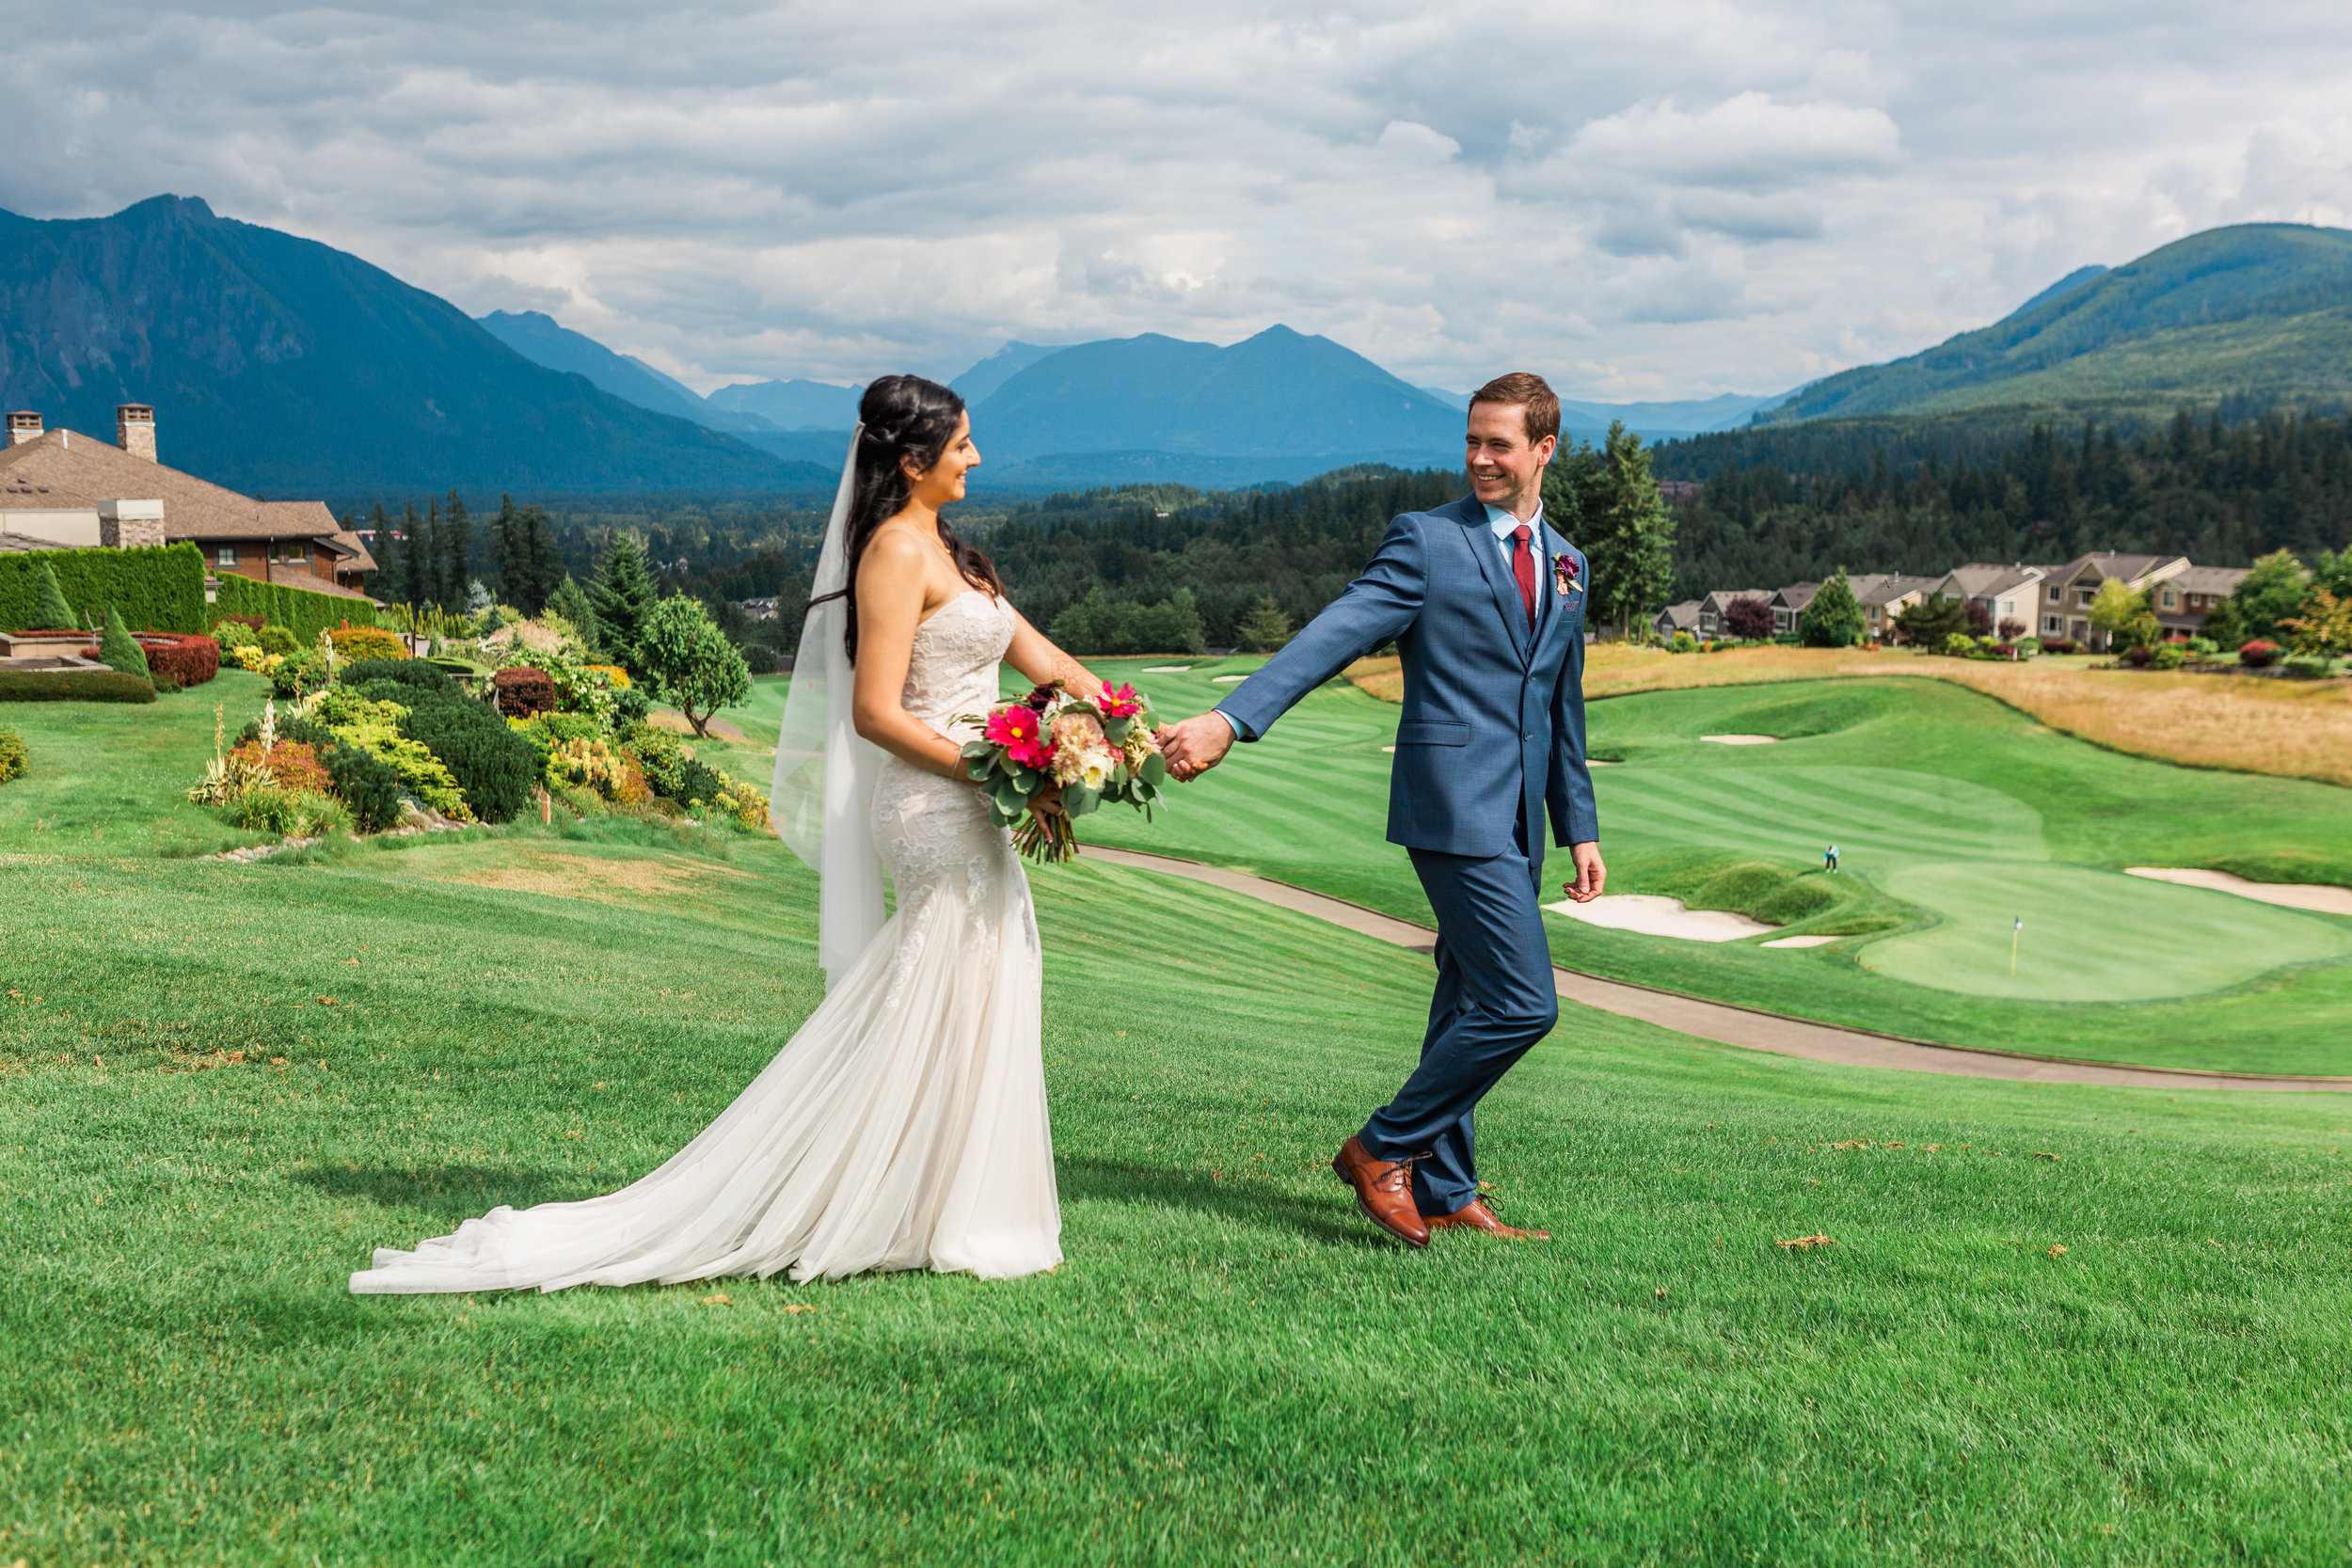 sohni and jacob-wedding at snoqualmie ridge-washington janelle elaine photography -2.jpg